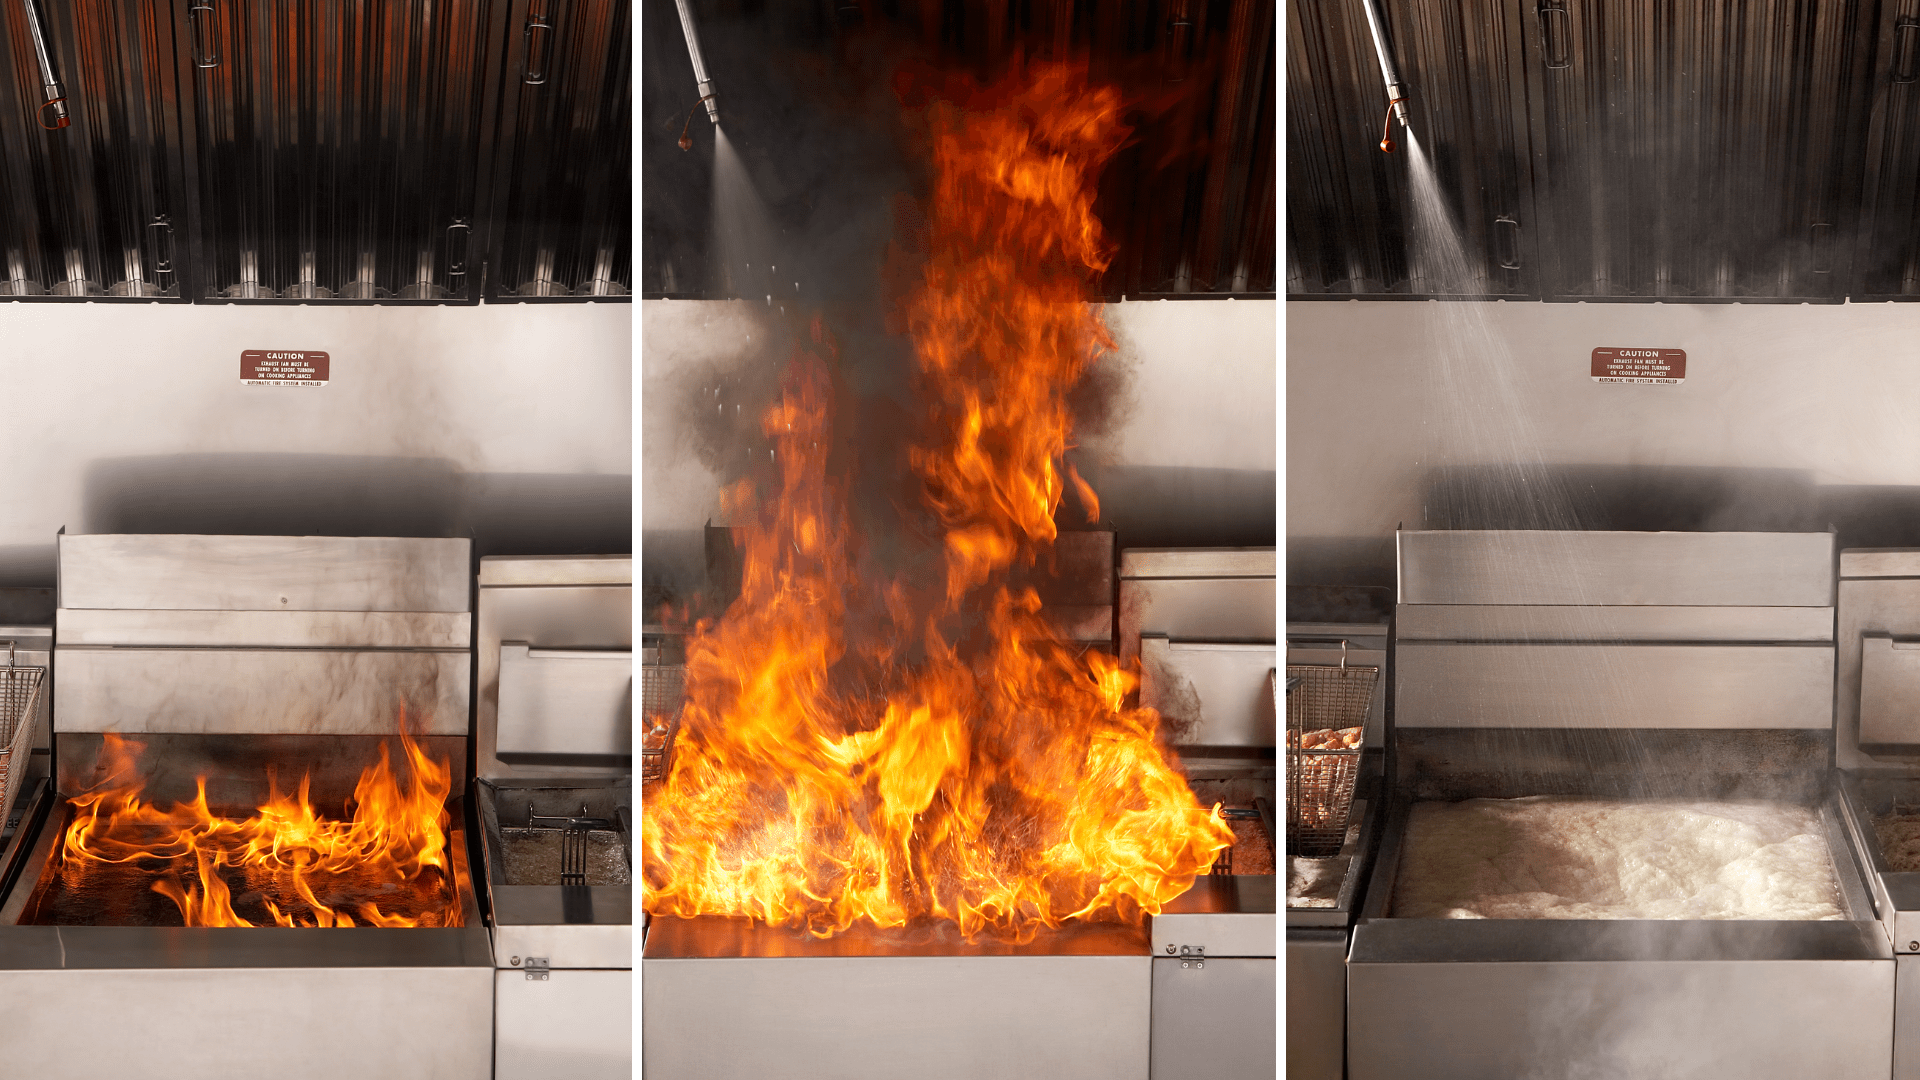 How to Prevent Fire In The Kitchen?